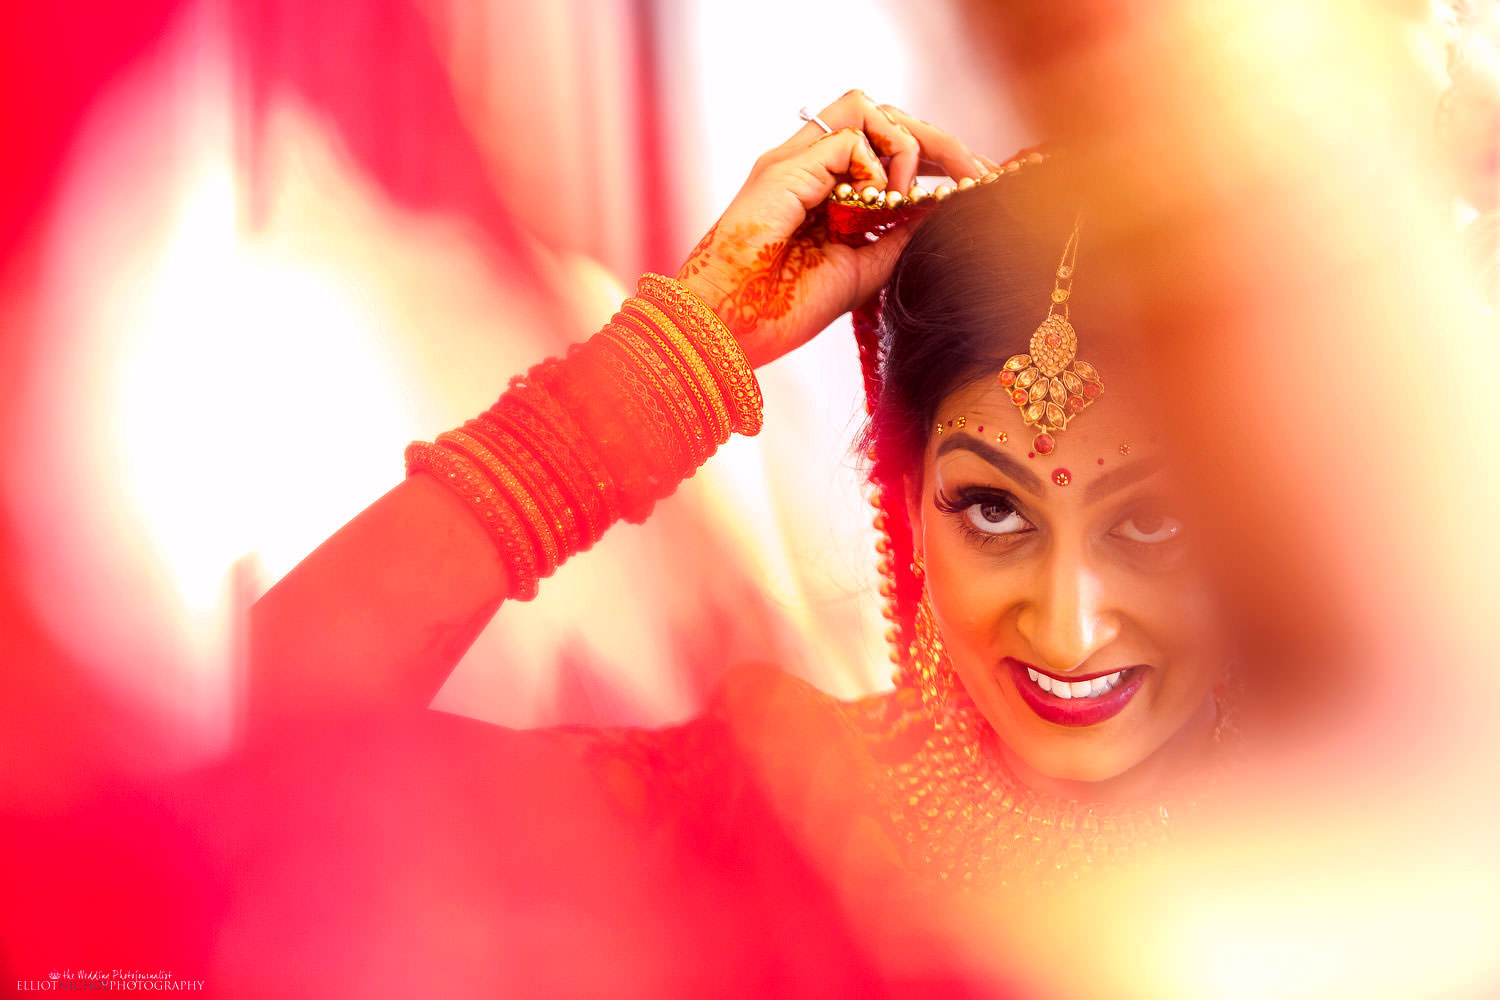 Indian bride getting married at Chateau Impney, Droitwich Spa, England. Photo by North East based wedding photographer Elliot Nichol.